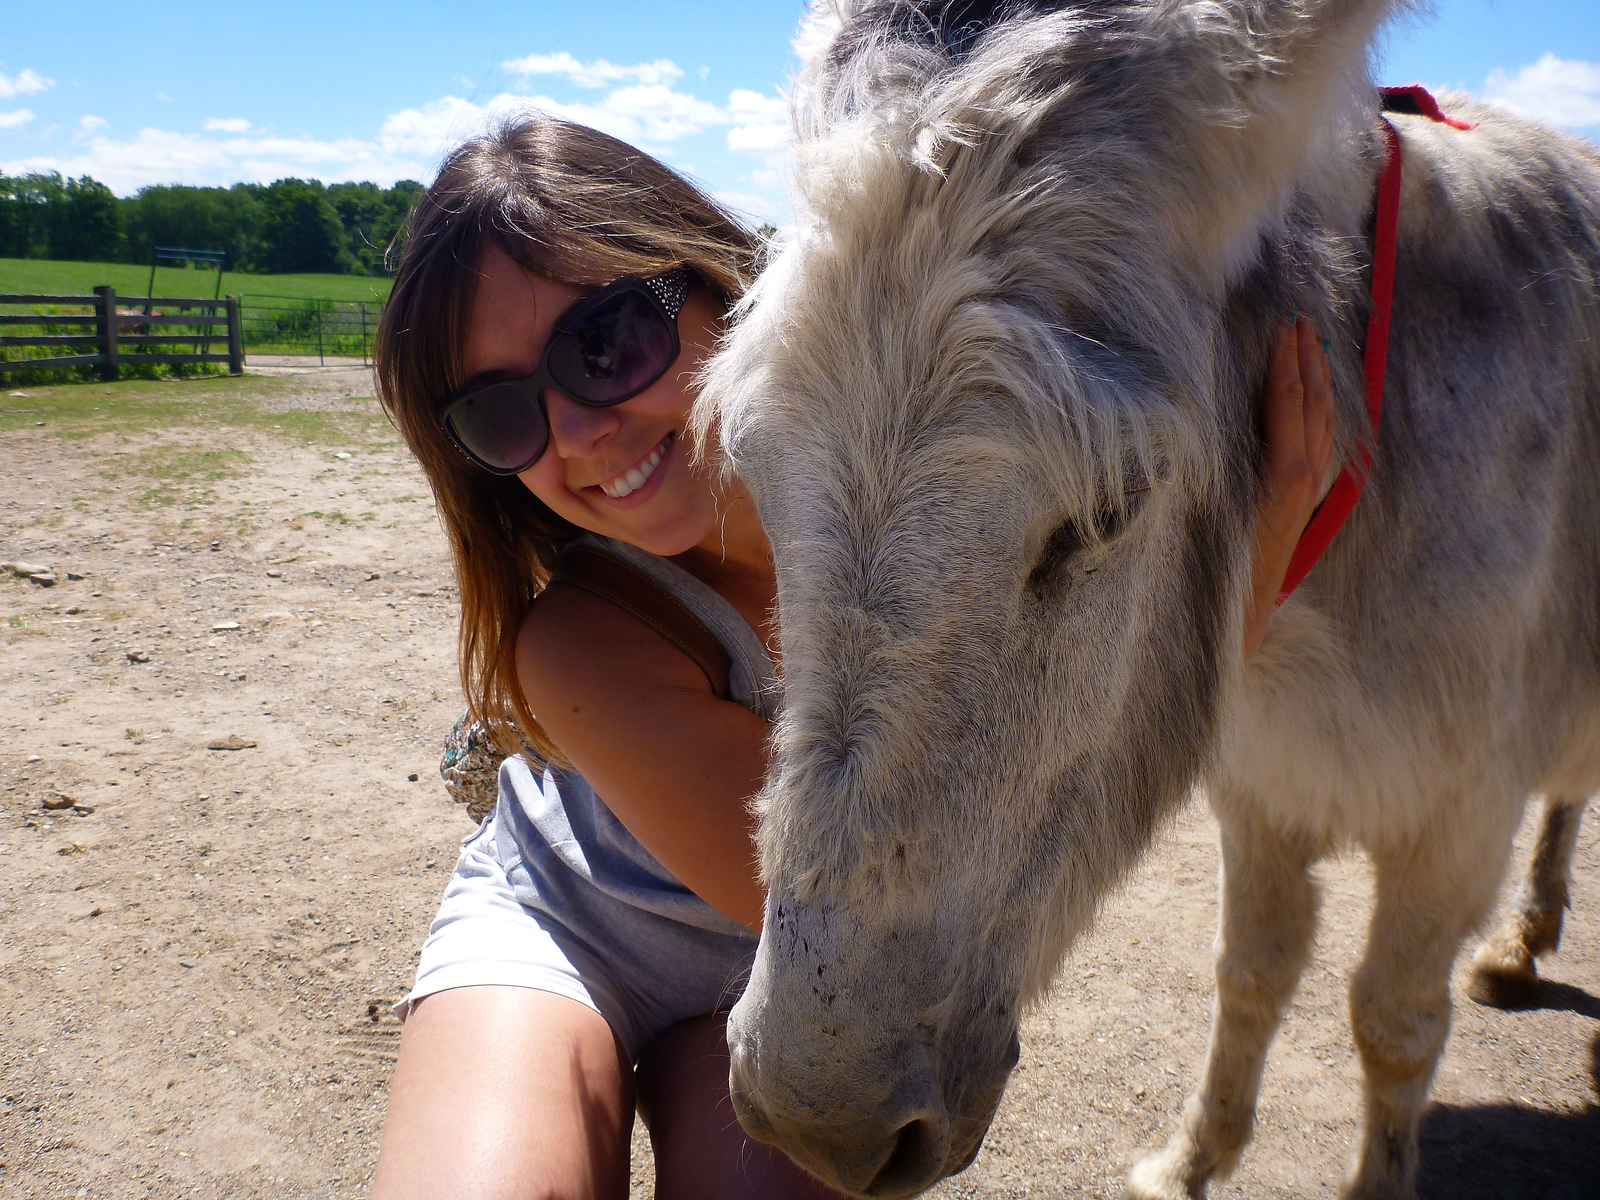 Donkey Sanctuary of Canada - Guelph, Ontario, Canada